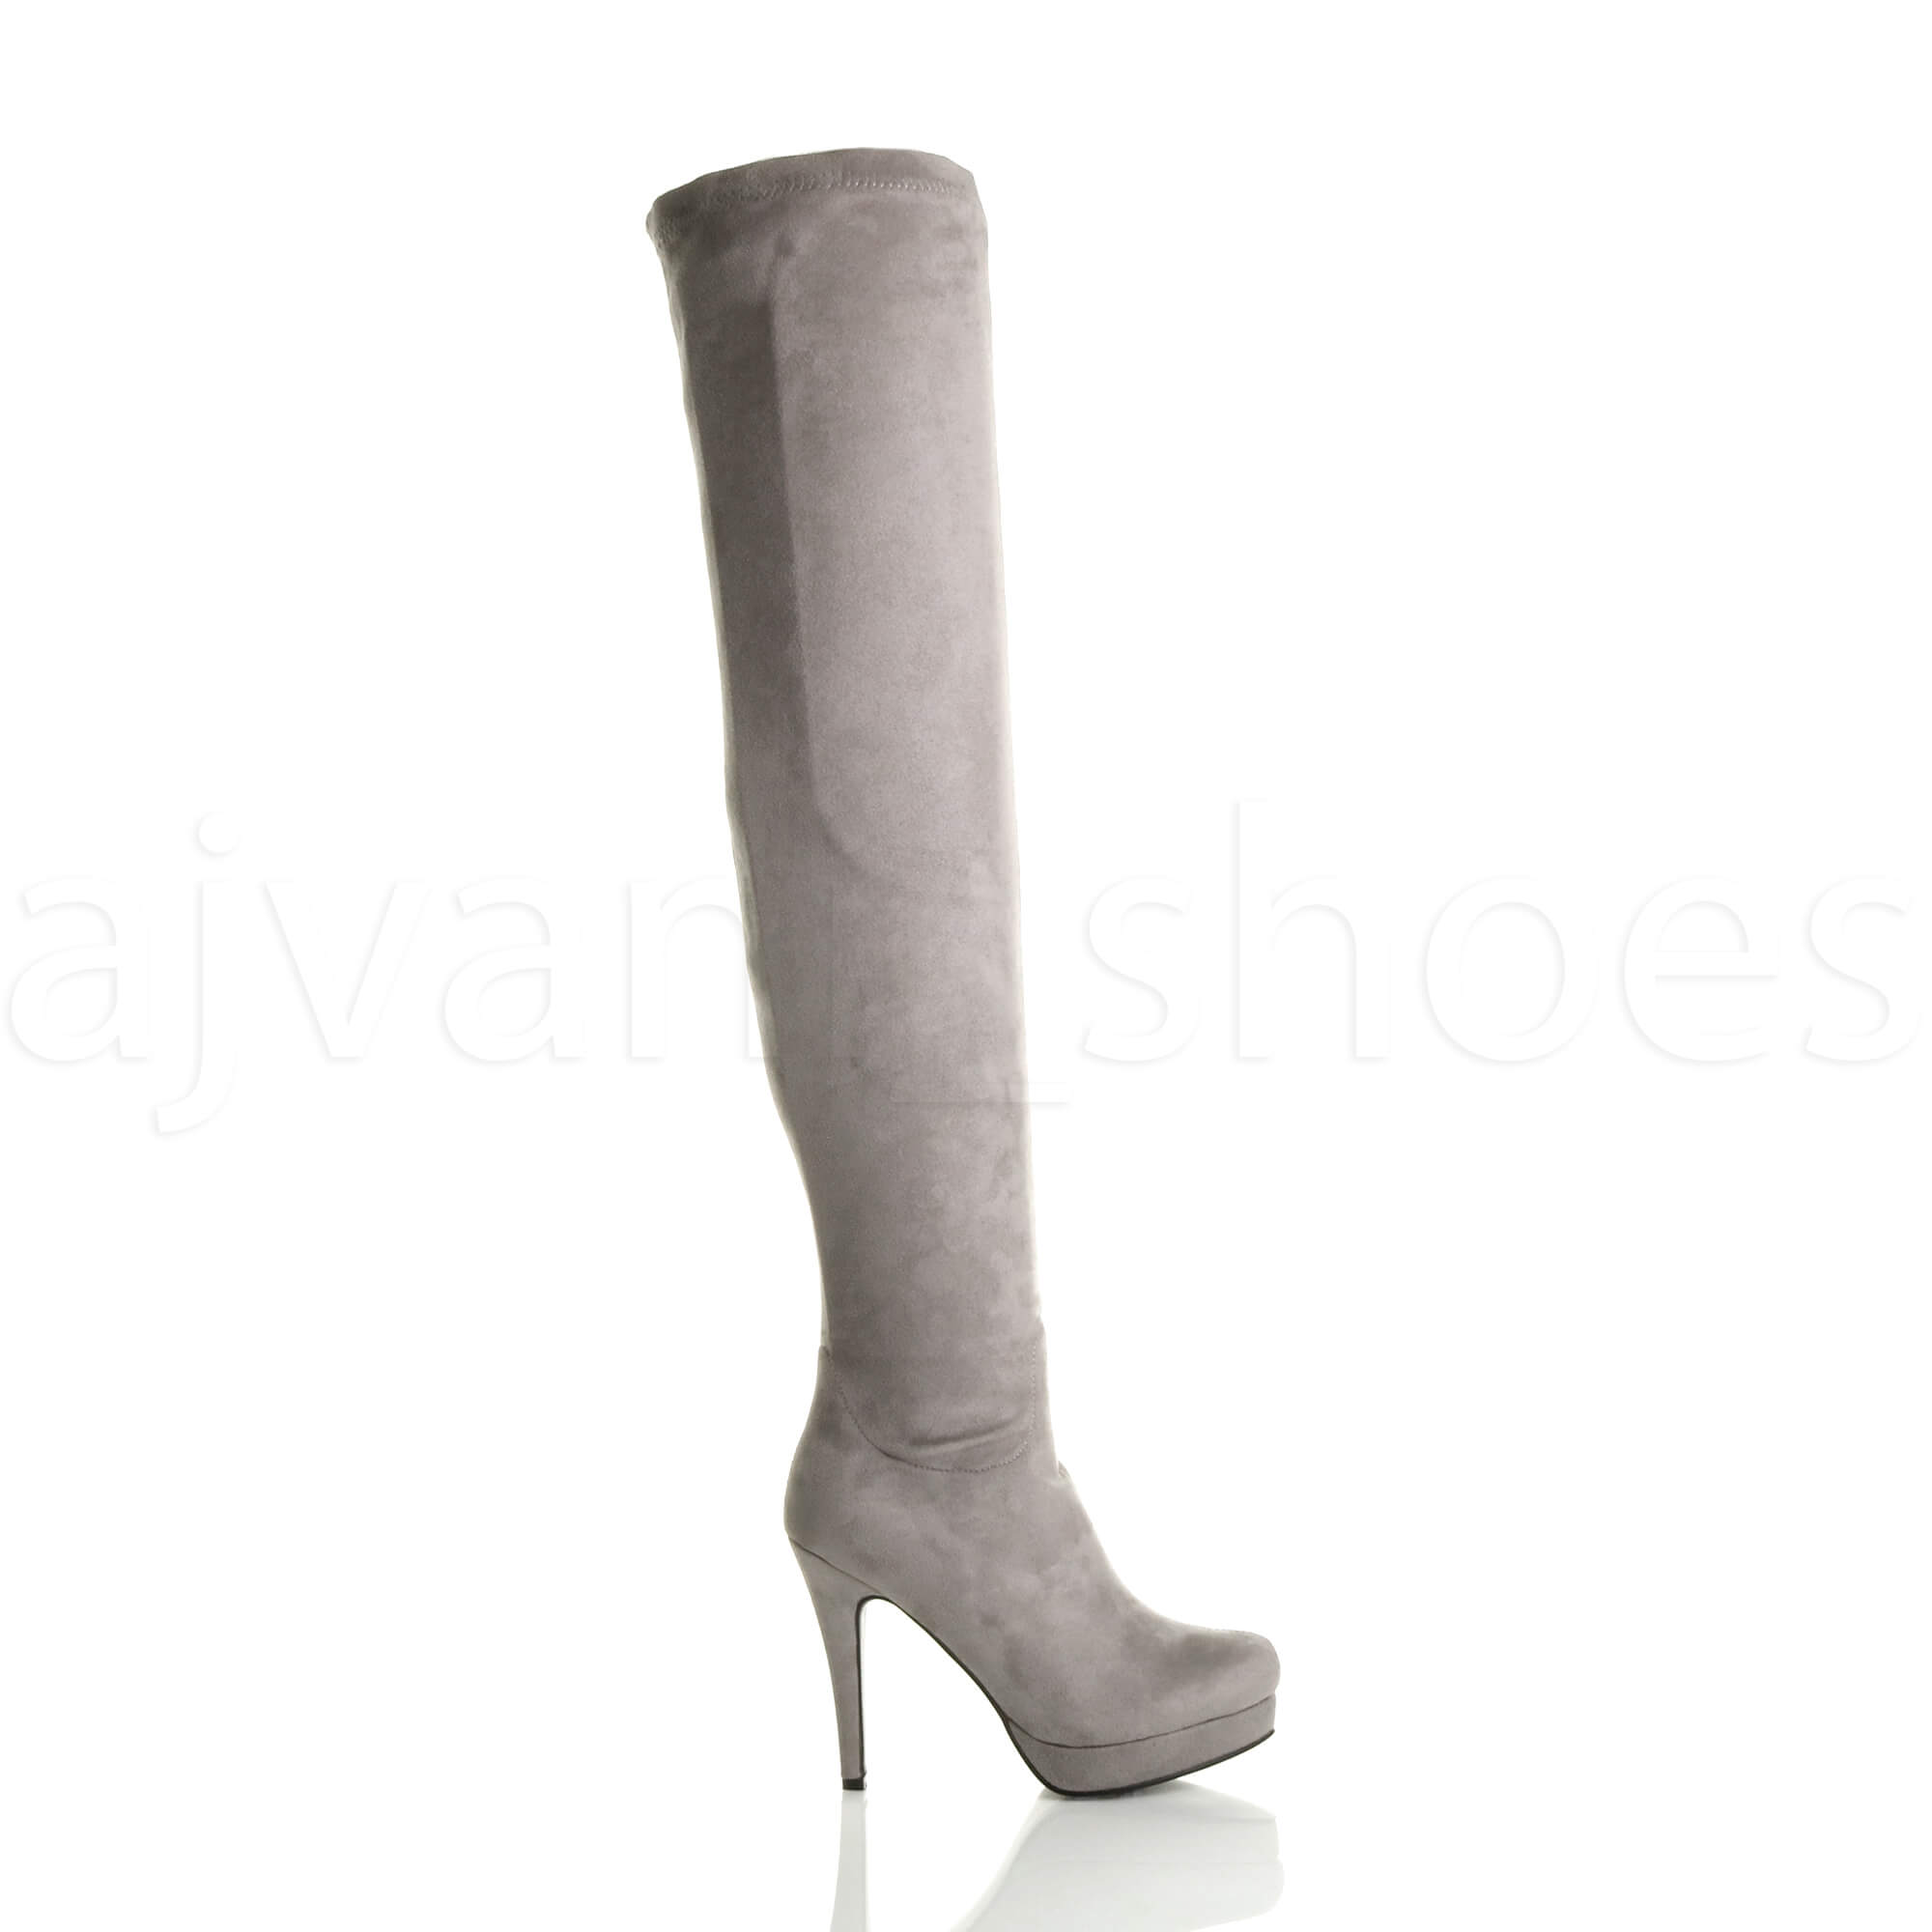 WOMENS-LADIES-HIGH-HEEL-STRETCH-ZIP-PLATFORM-OVER-THE-KNEE-THIGH-BOOTS-SIZE